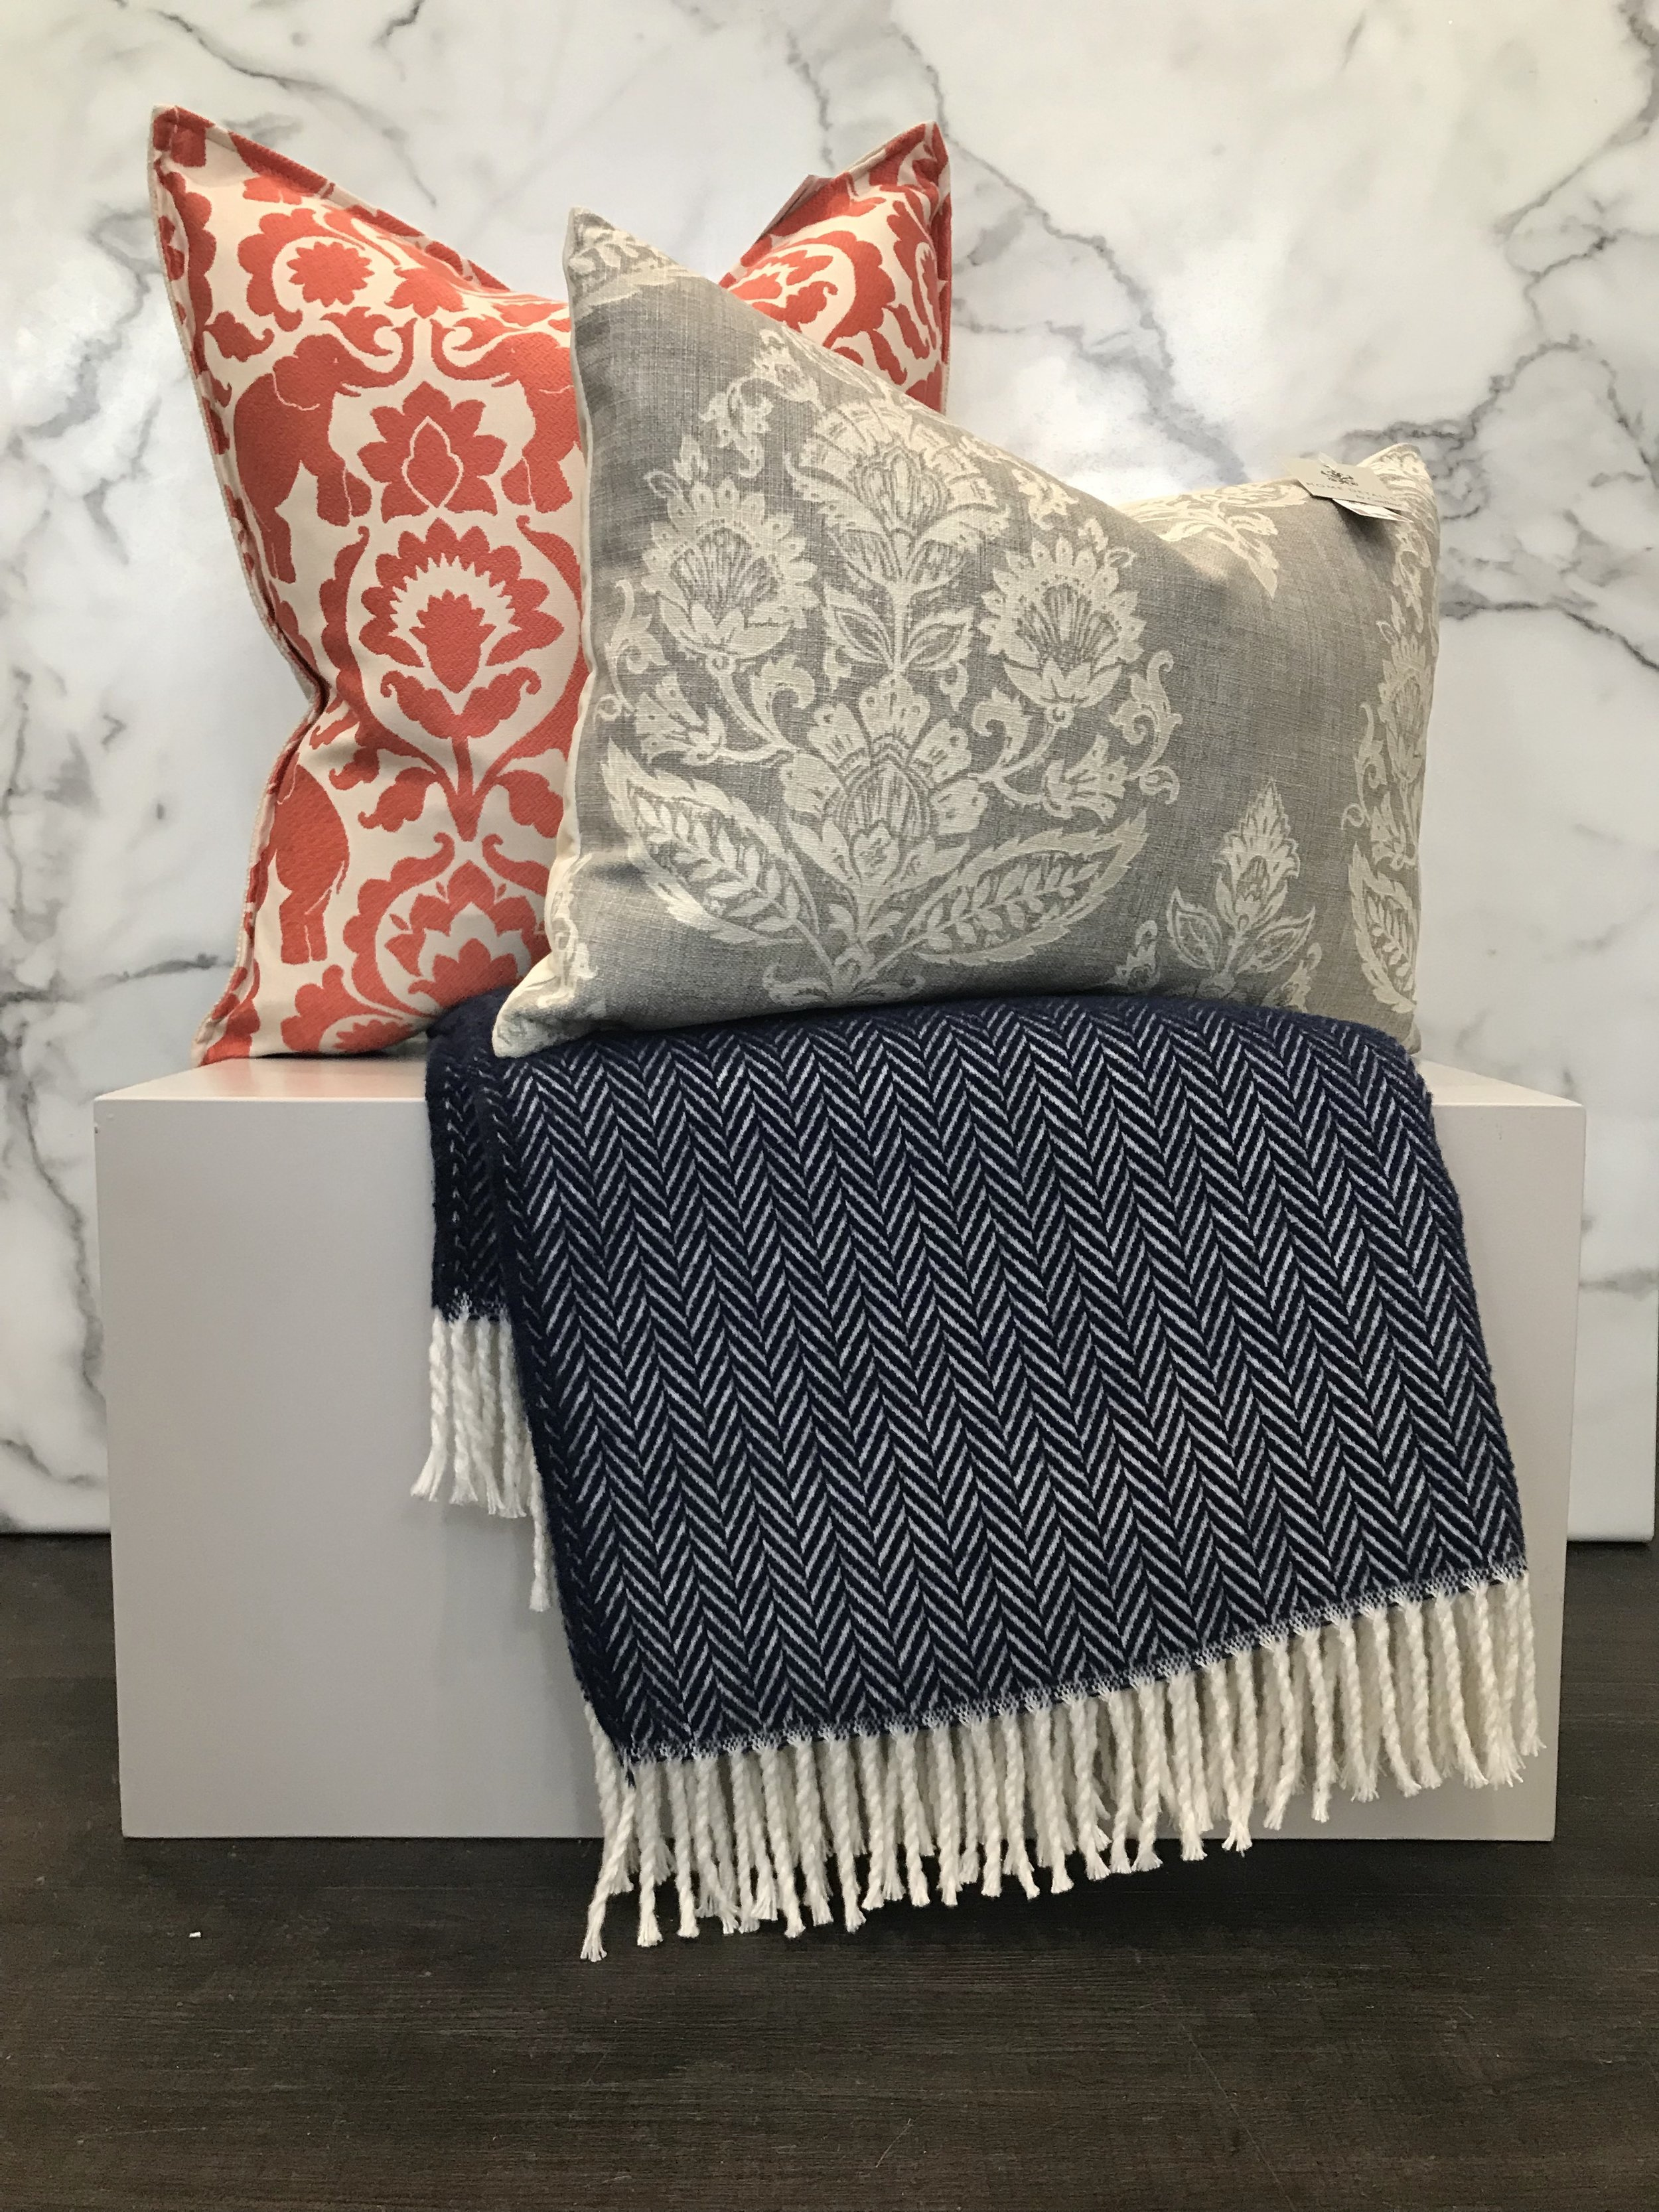 - This is definitely the most eclectic of the pairings we came up with. All three pieces have bold prints but they are all working together to create a mixed-match look that is eclectic and fun. Coral/orange and navy pair beautifully but are an uncommon pair which adds a unique touch.